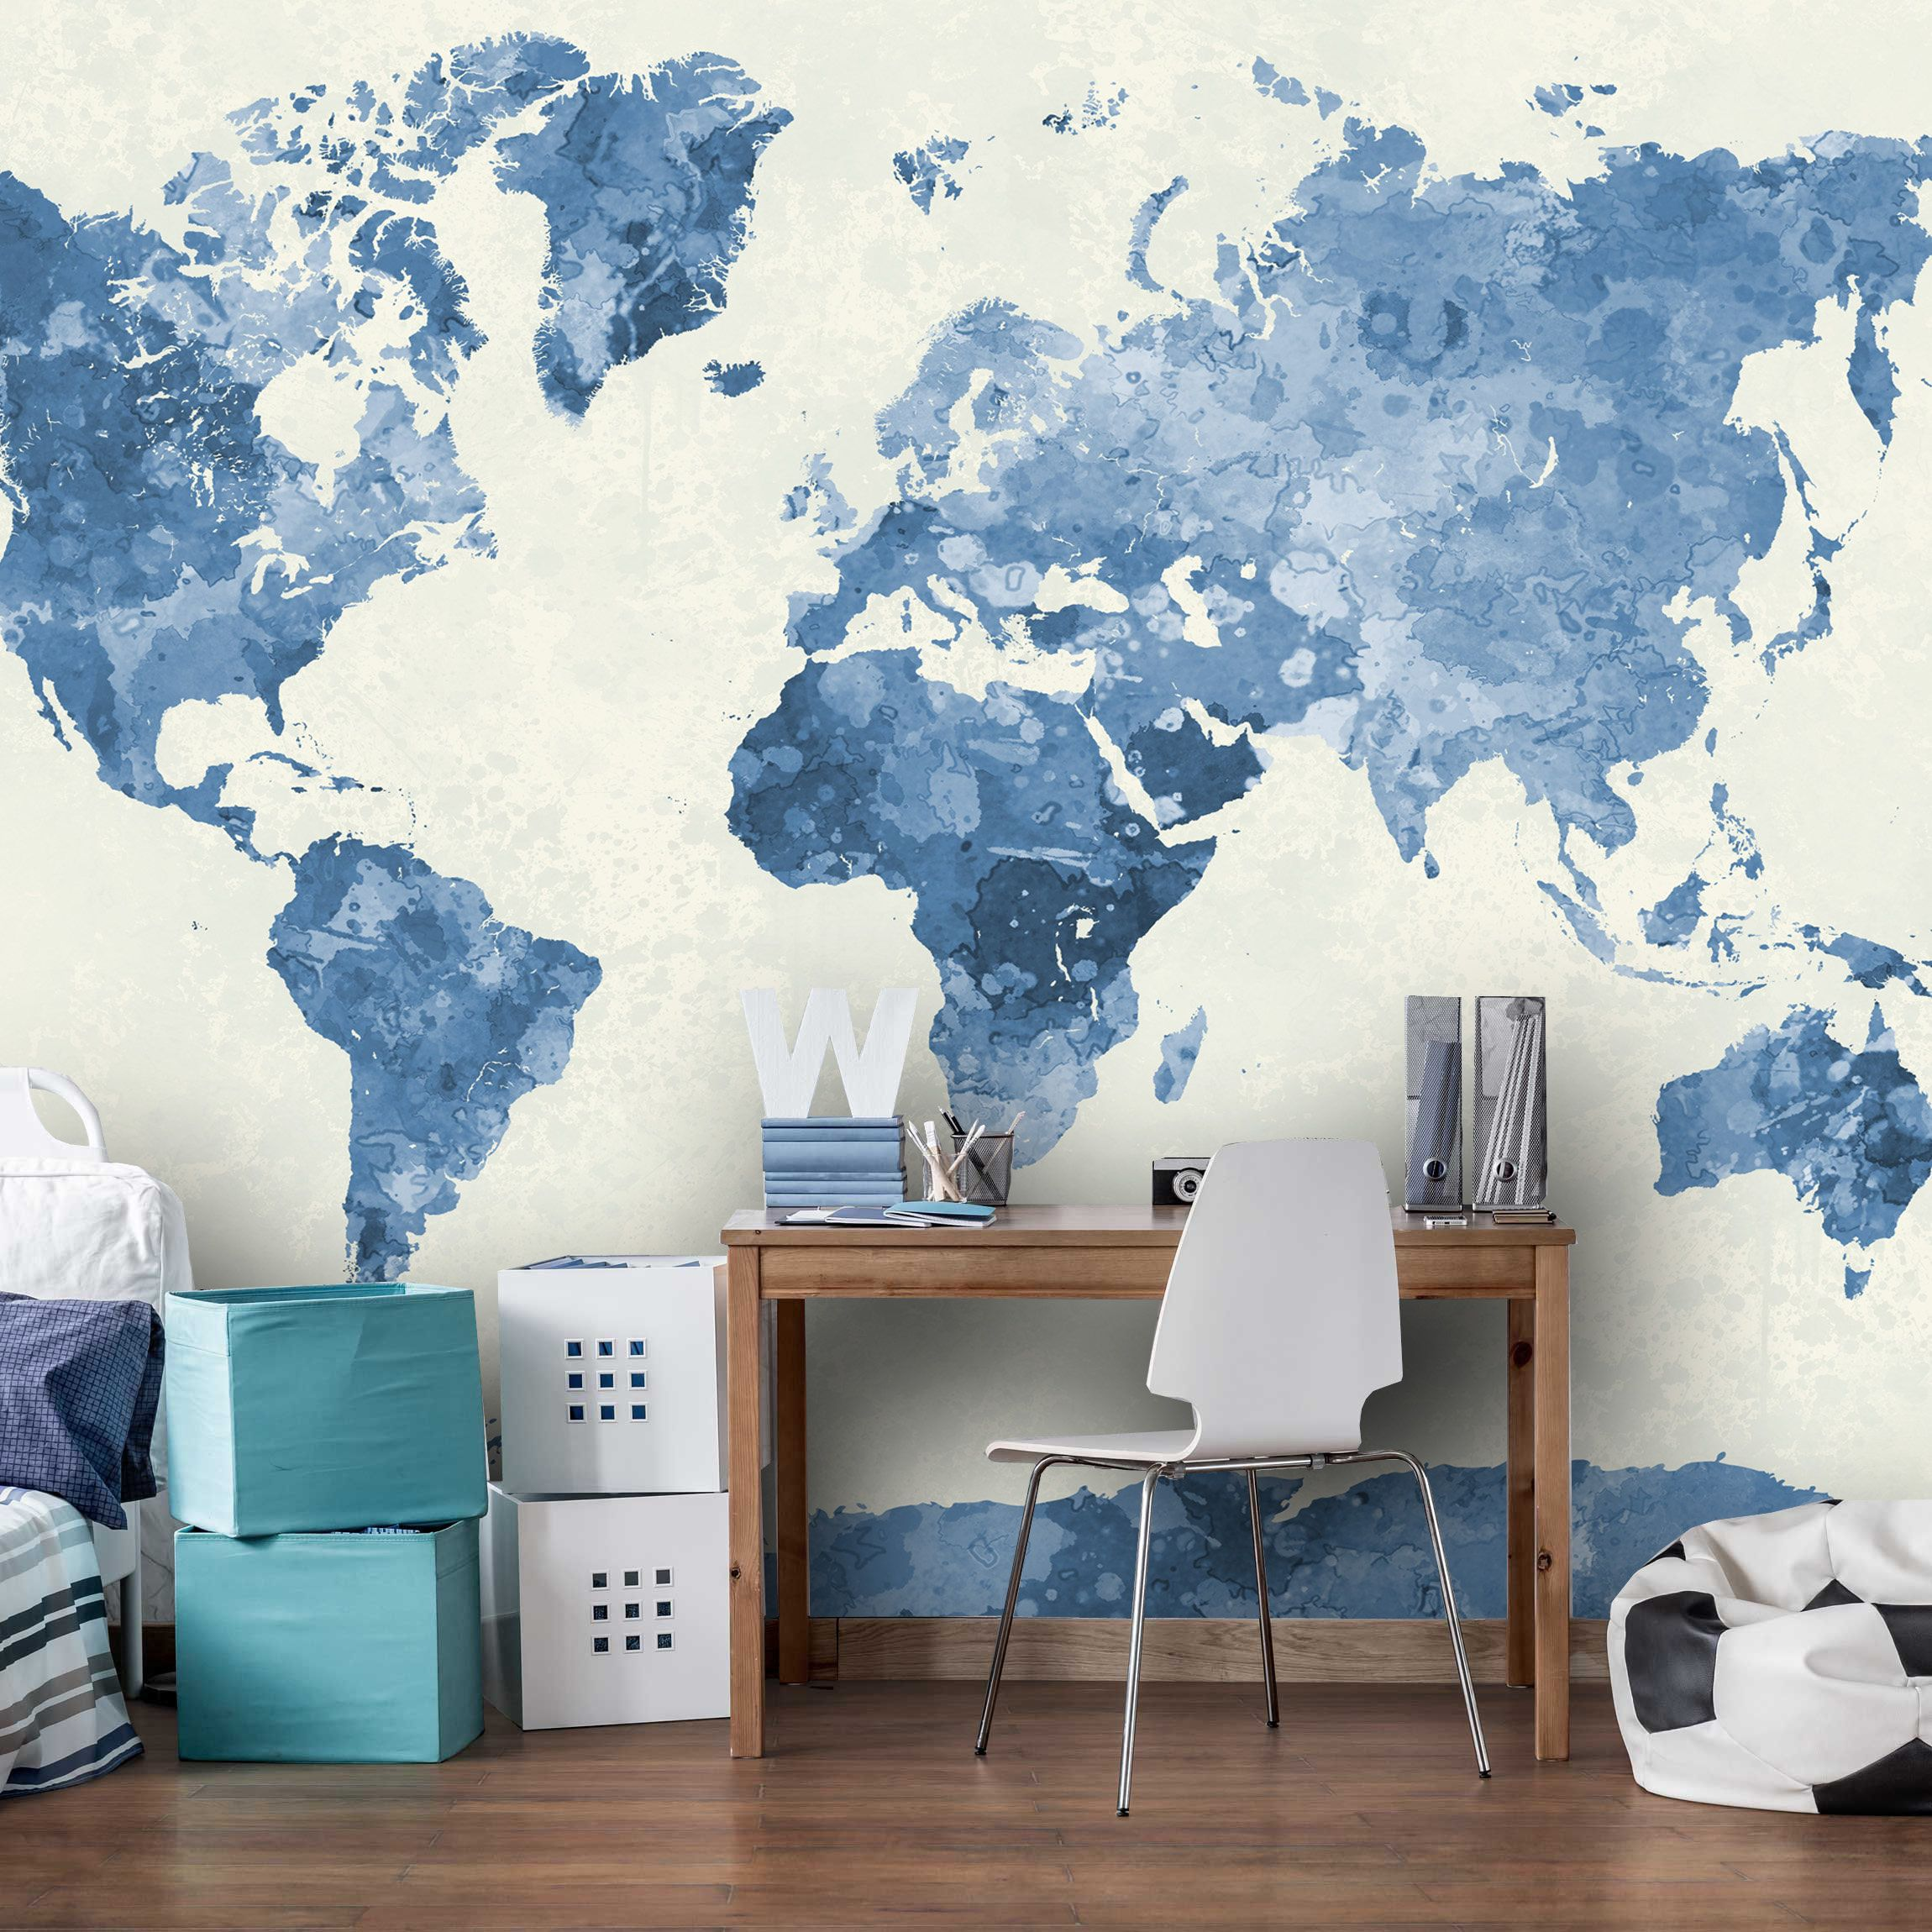 Watercolor World Map In Blue Wall Mural Watercolor World Map In